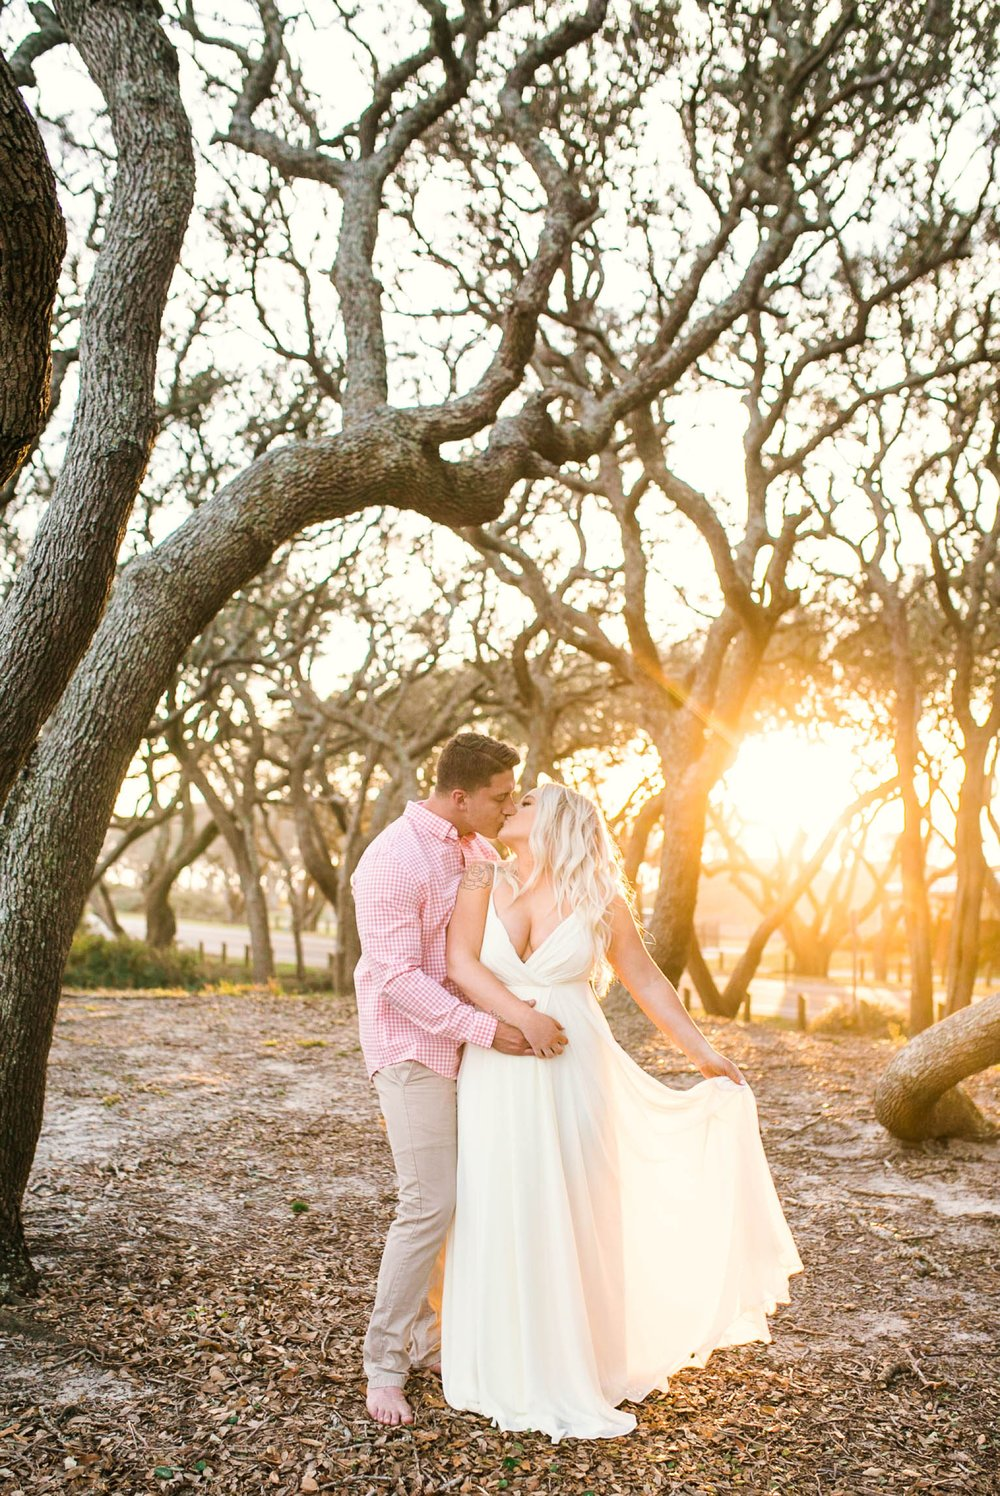 Engagement Photography Session beneath tropical trees at sunset during golden hour light - man kissing his fiance, woman is playing with her dress - girl is wearing a white flowy maxi dress from lulus - Honolulu Oahu Hawaii Wedding Photographer - Johanna Dye